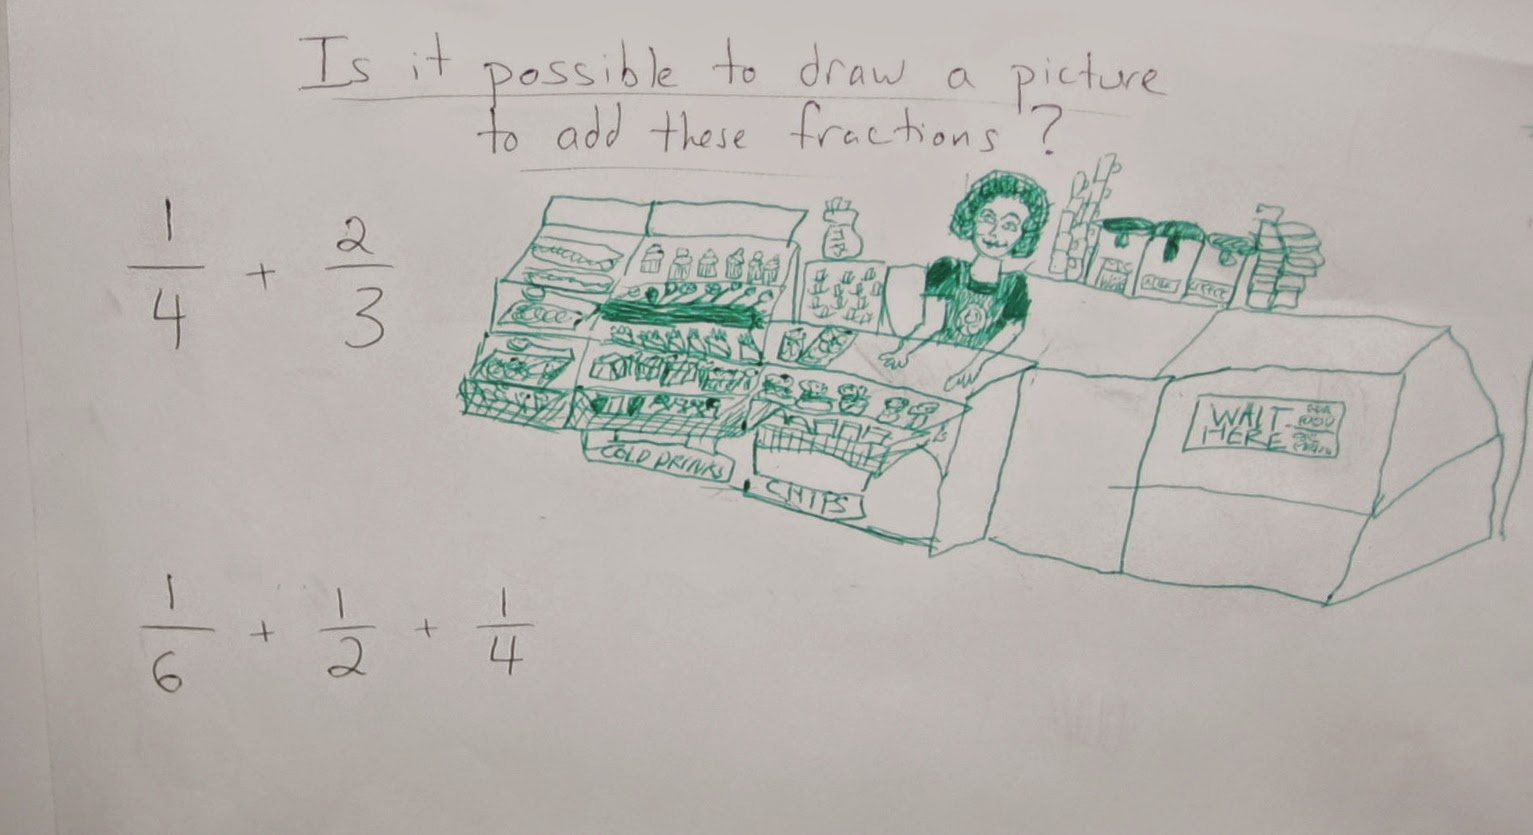 Rational expressions draw a picture is too darn abstract for kids draw a picture is too darn abstract for kids strategies pooptronica